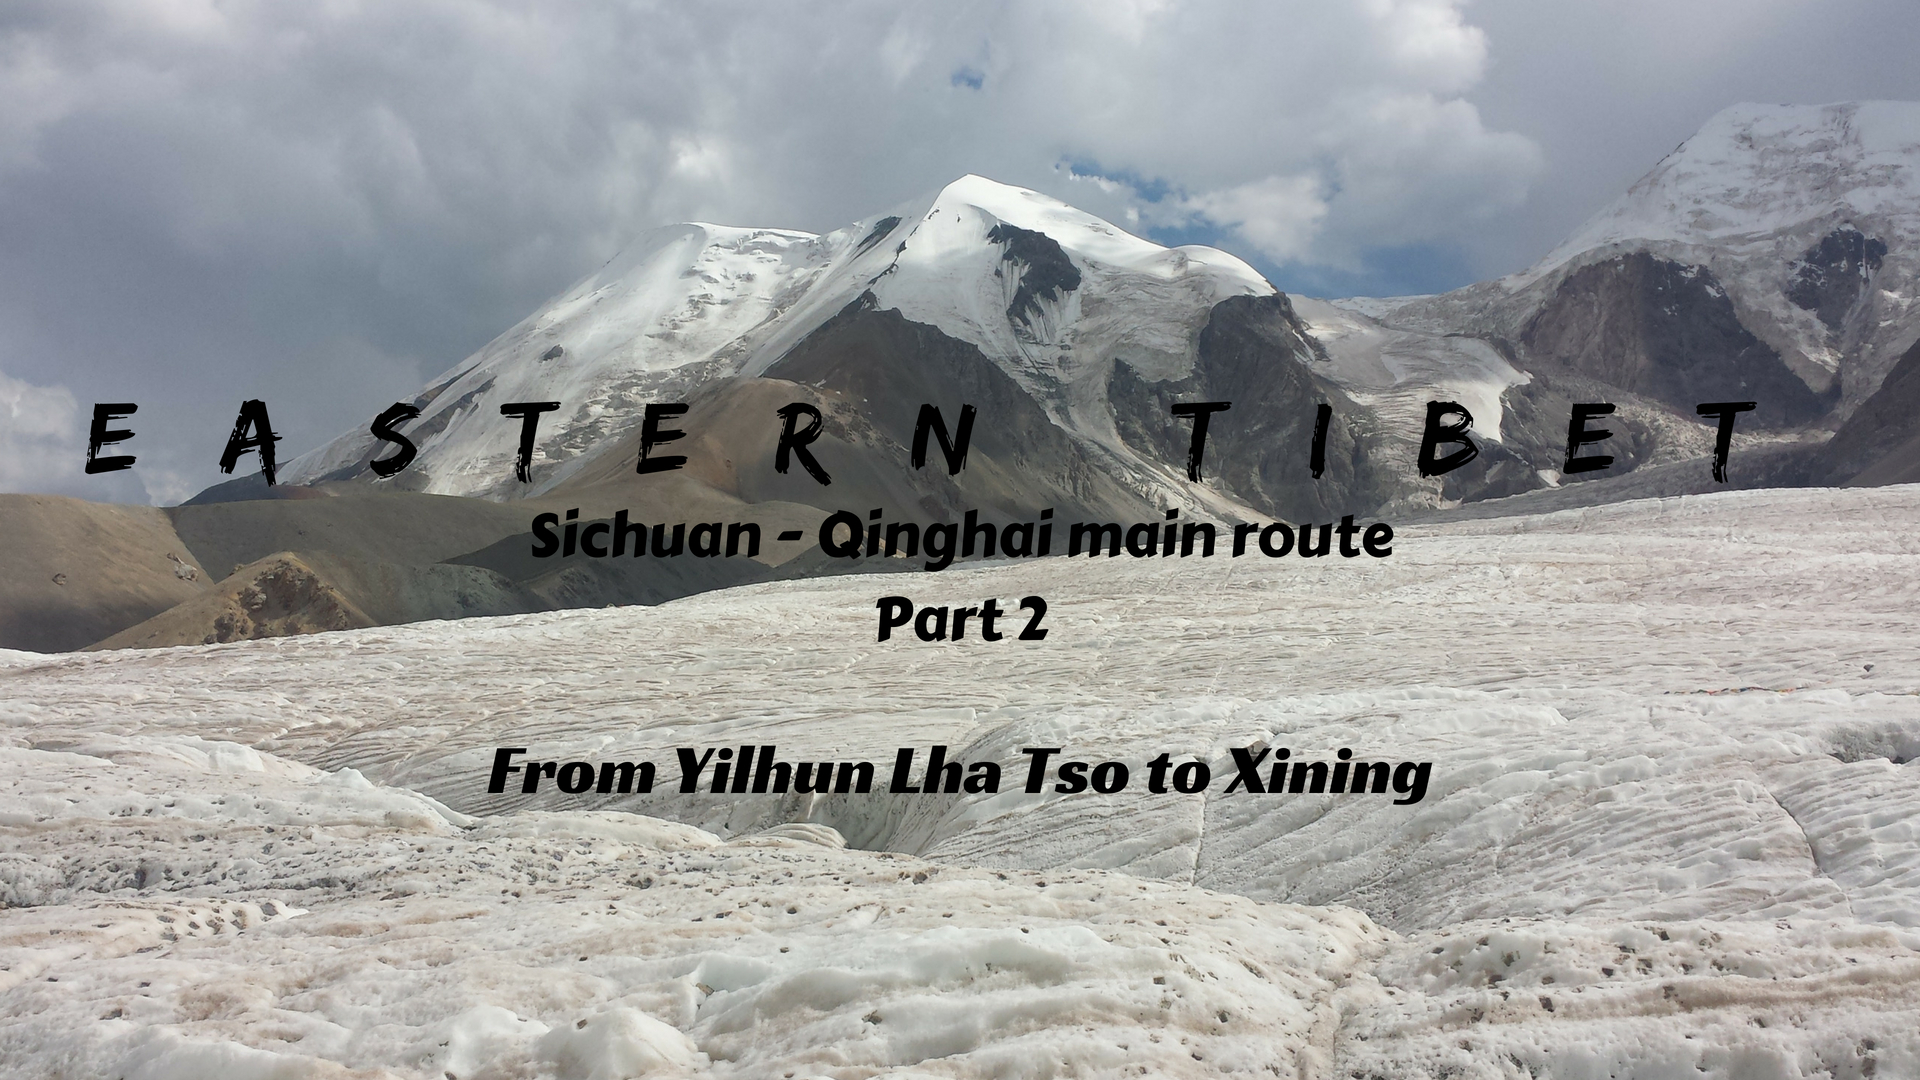 EASTERN TIBET ROUTE ULTIMATE GUIDE- Part 2